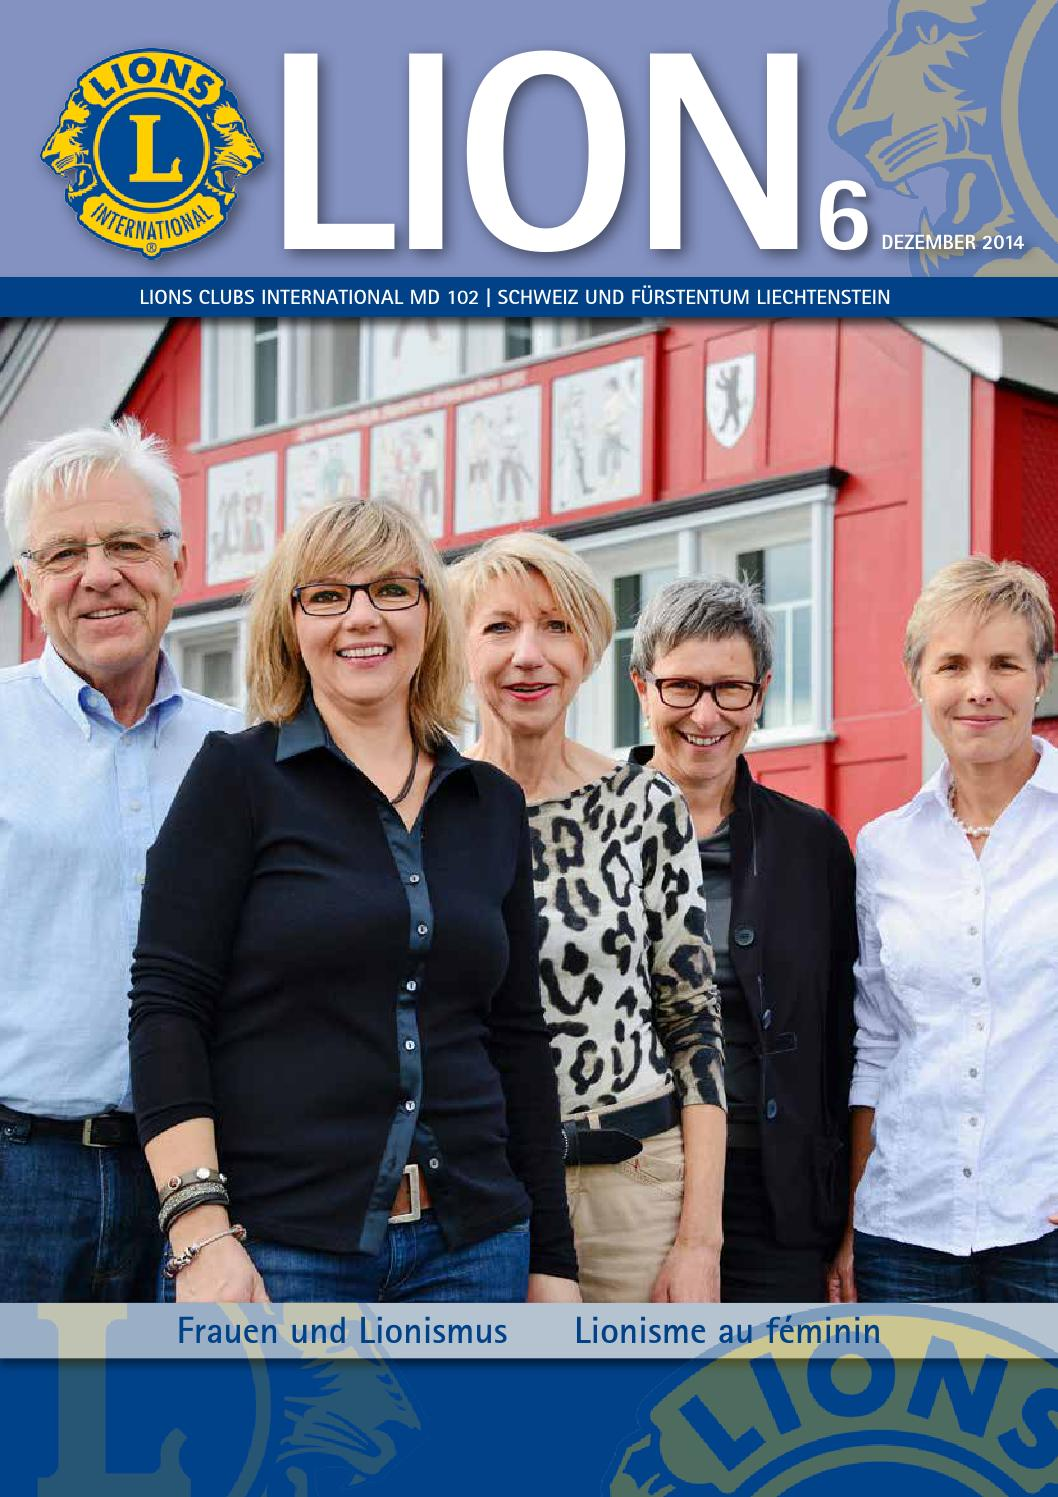 lion 6 dezember 2014 by lionsclubs issuu